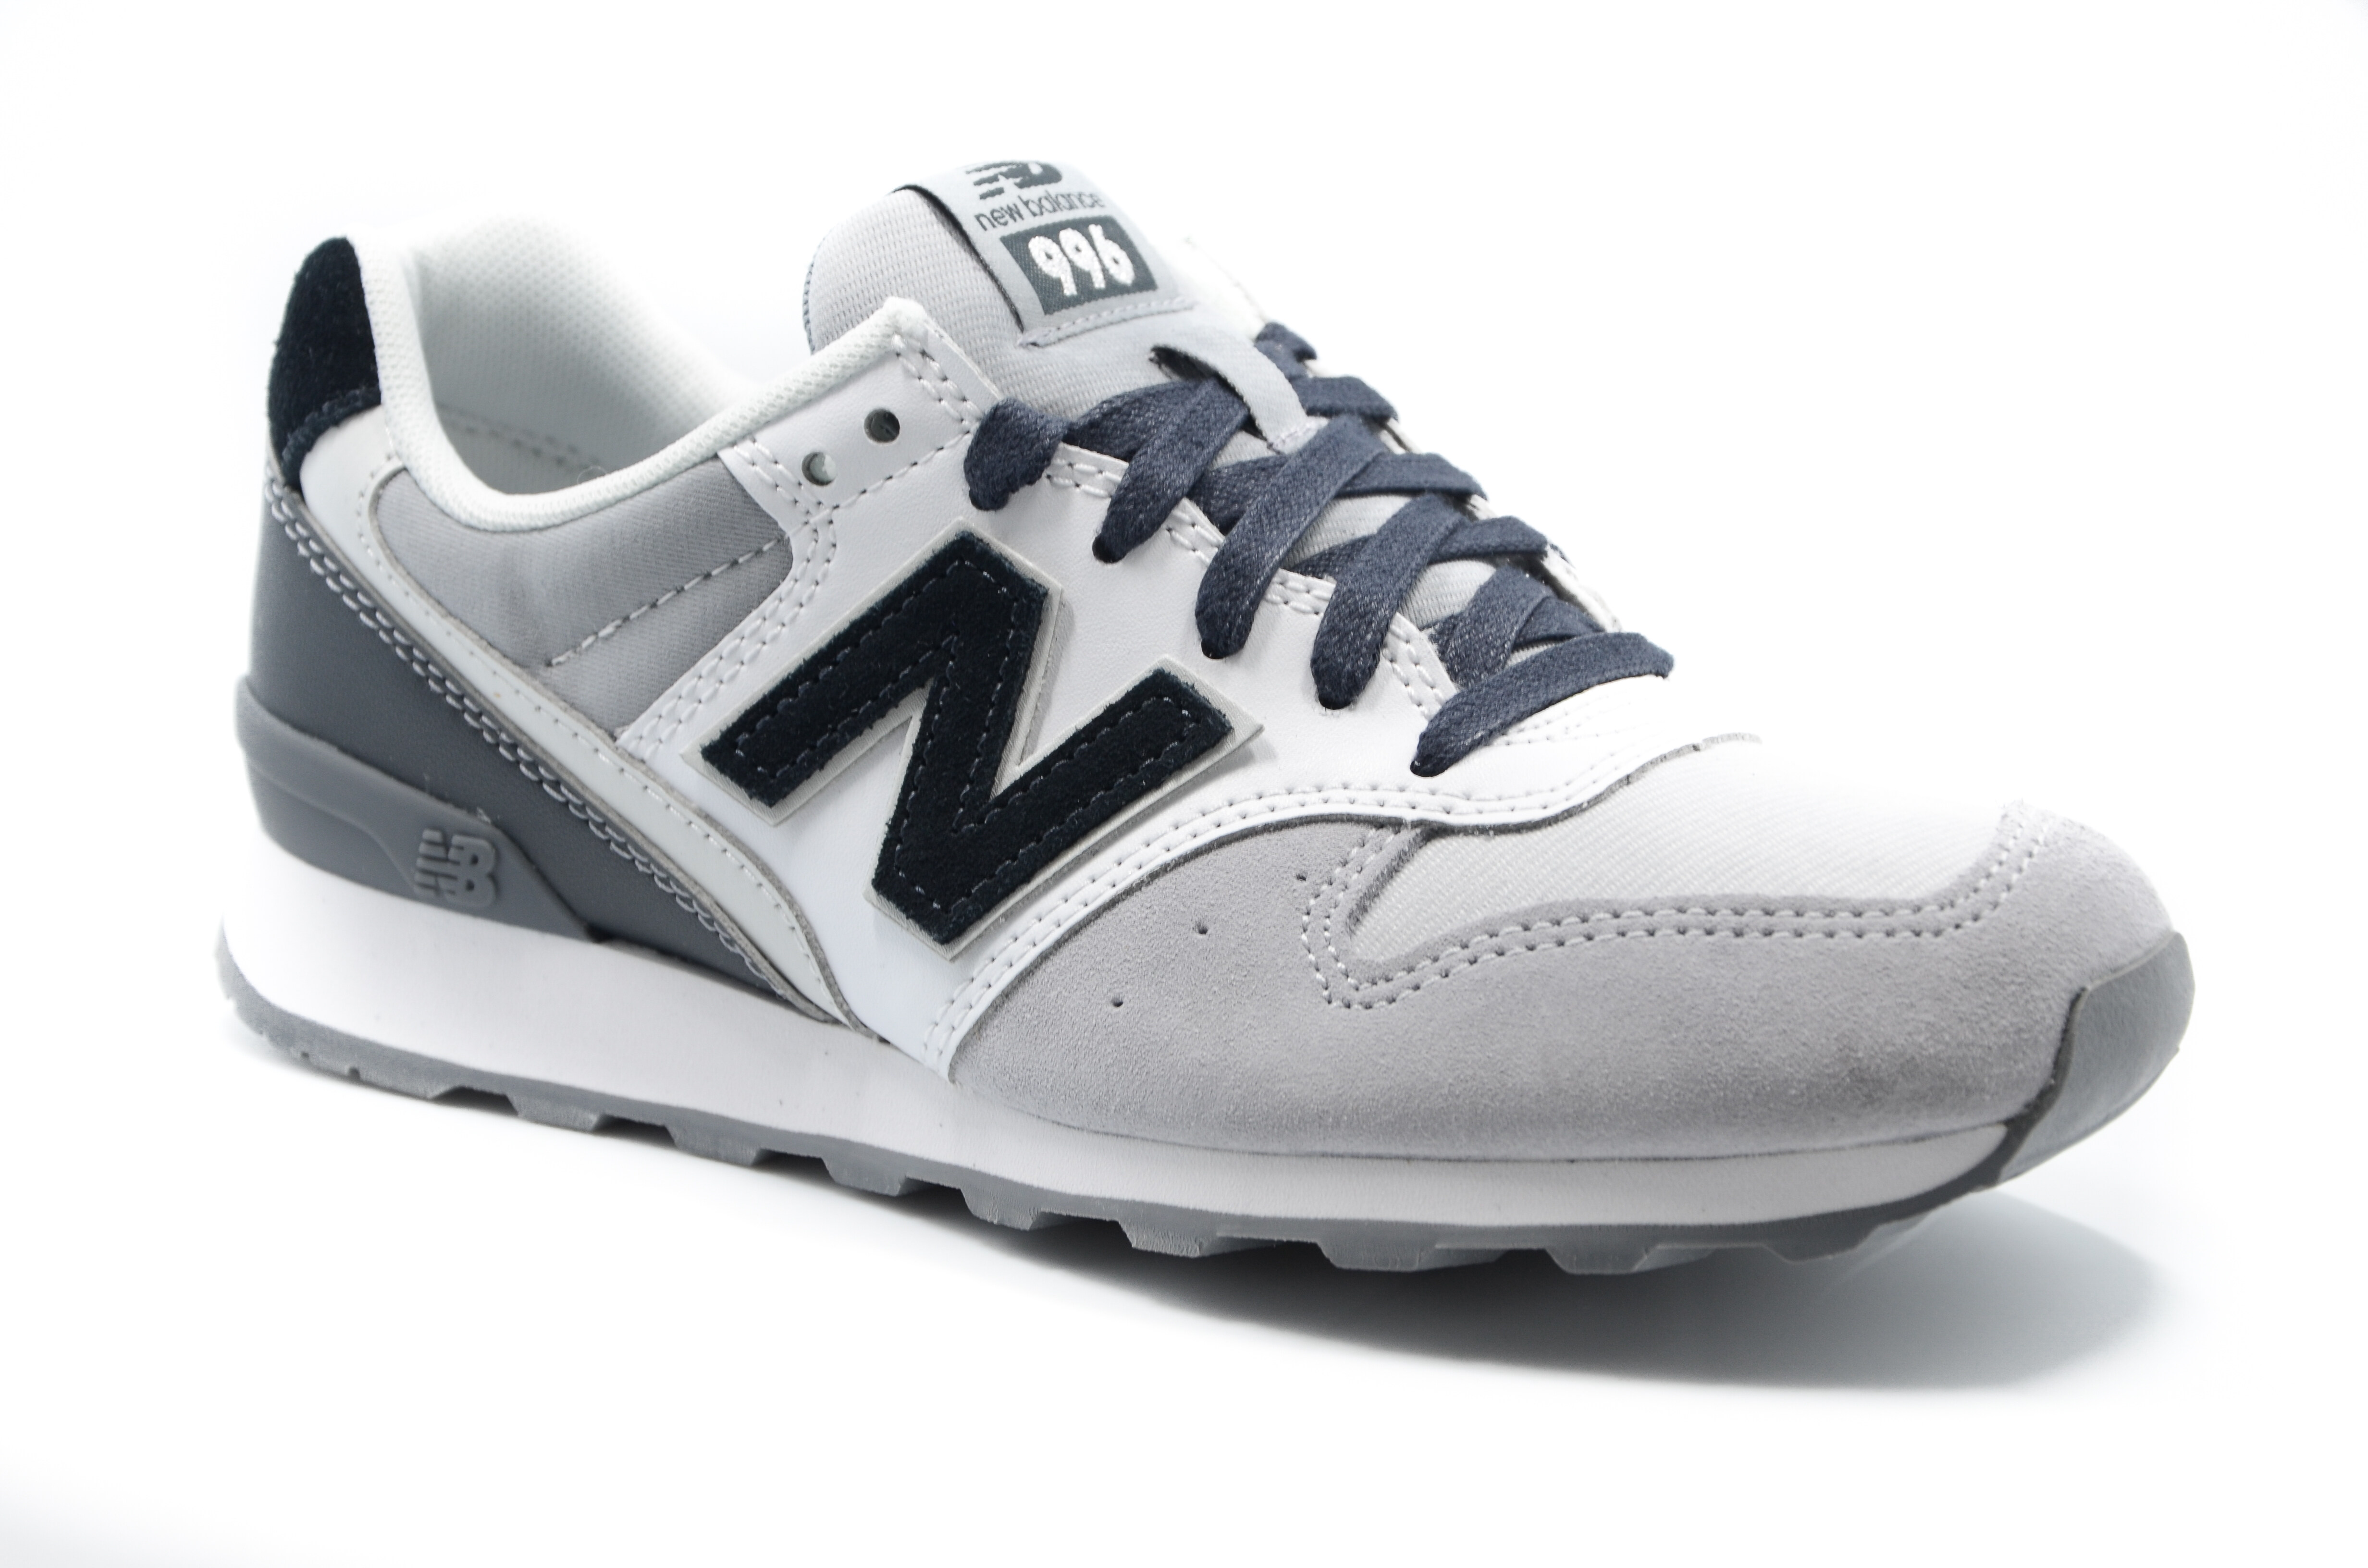 e27d993ece819 Cheap new balance 71 Buy Online >OFF43% Discounted